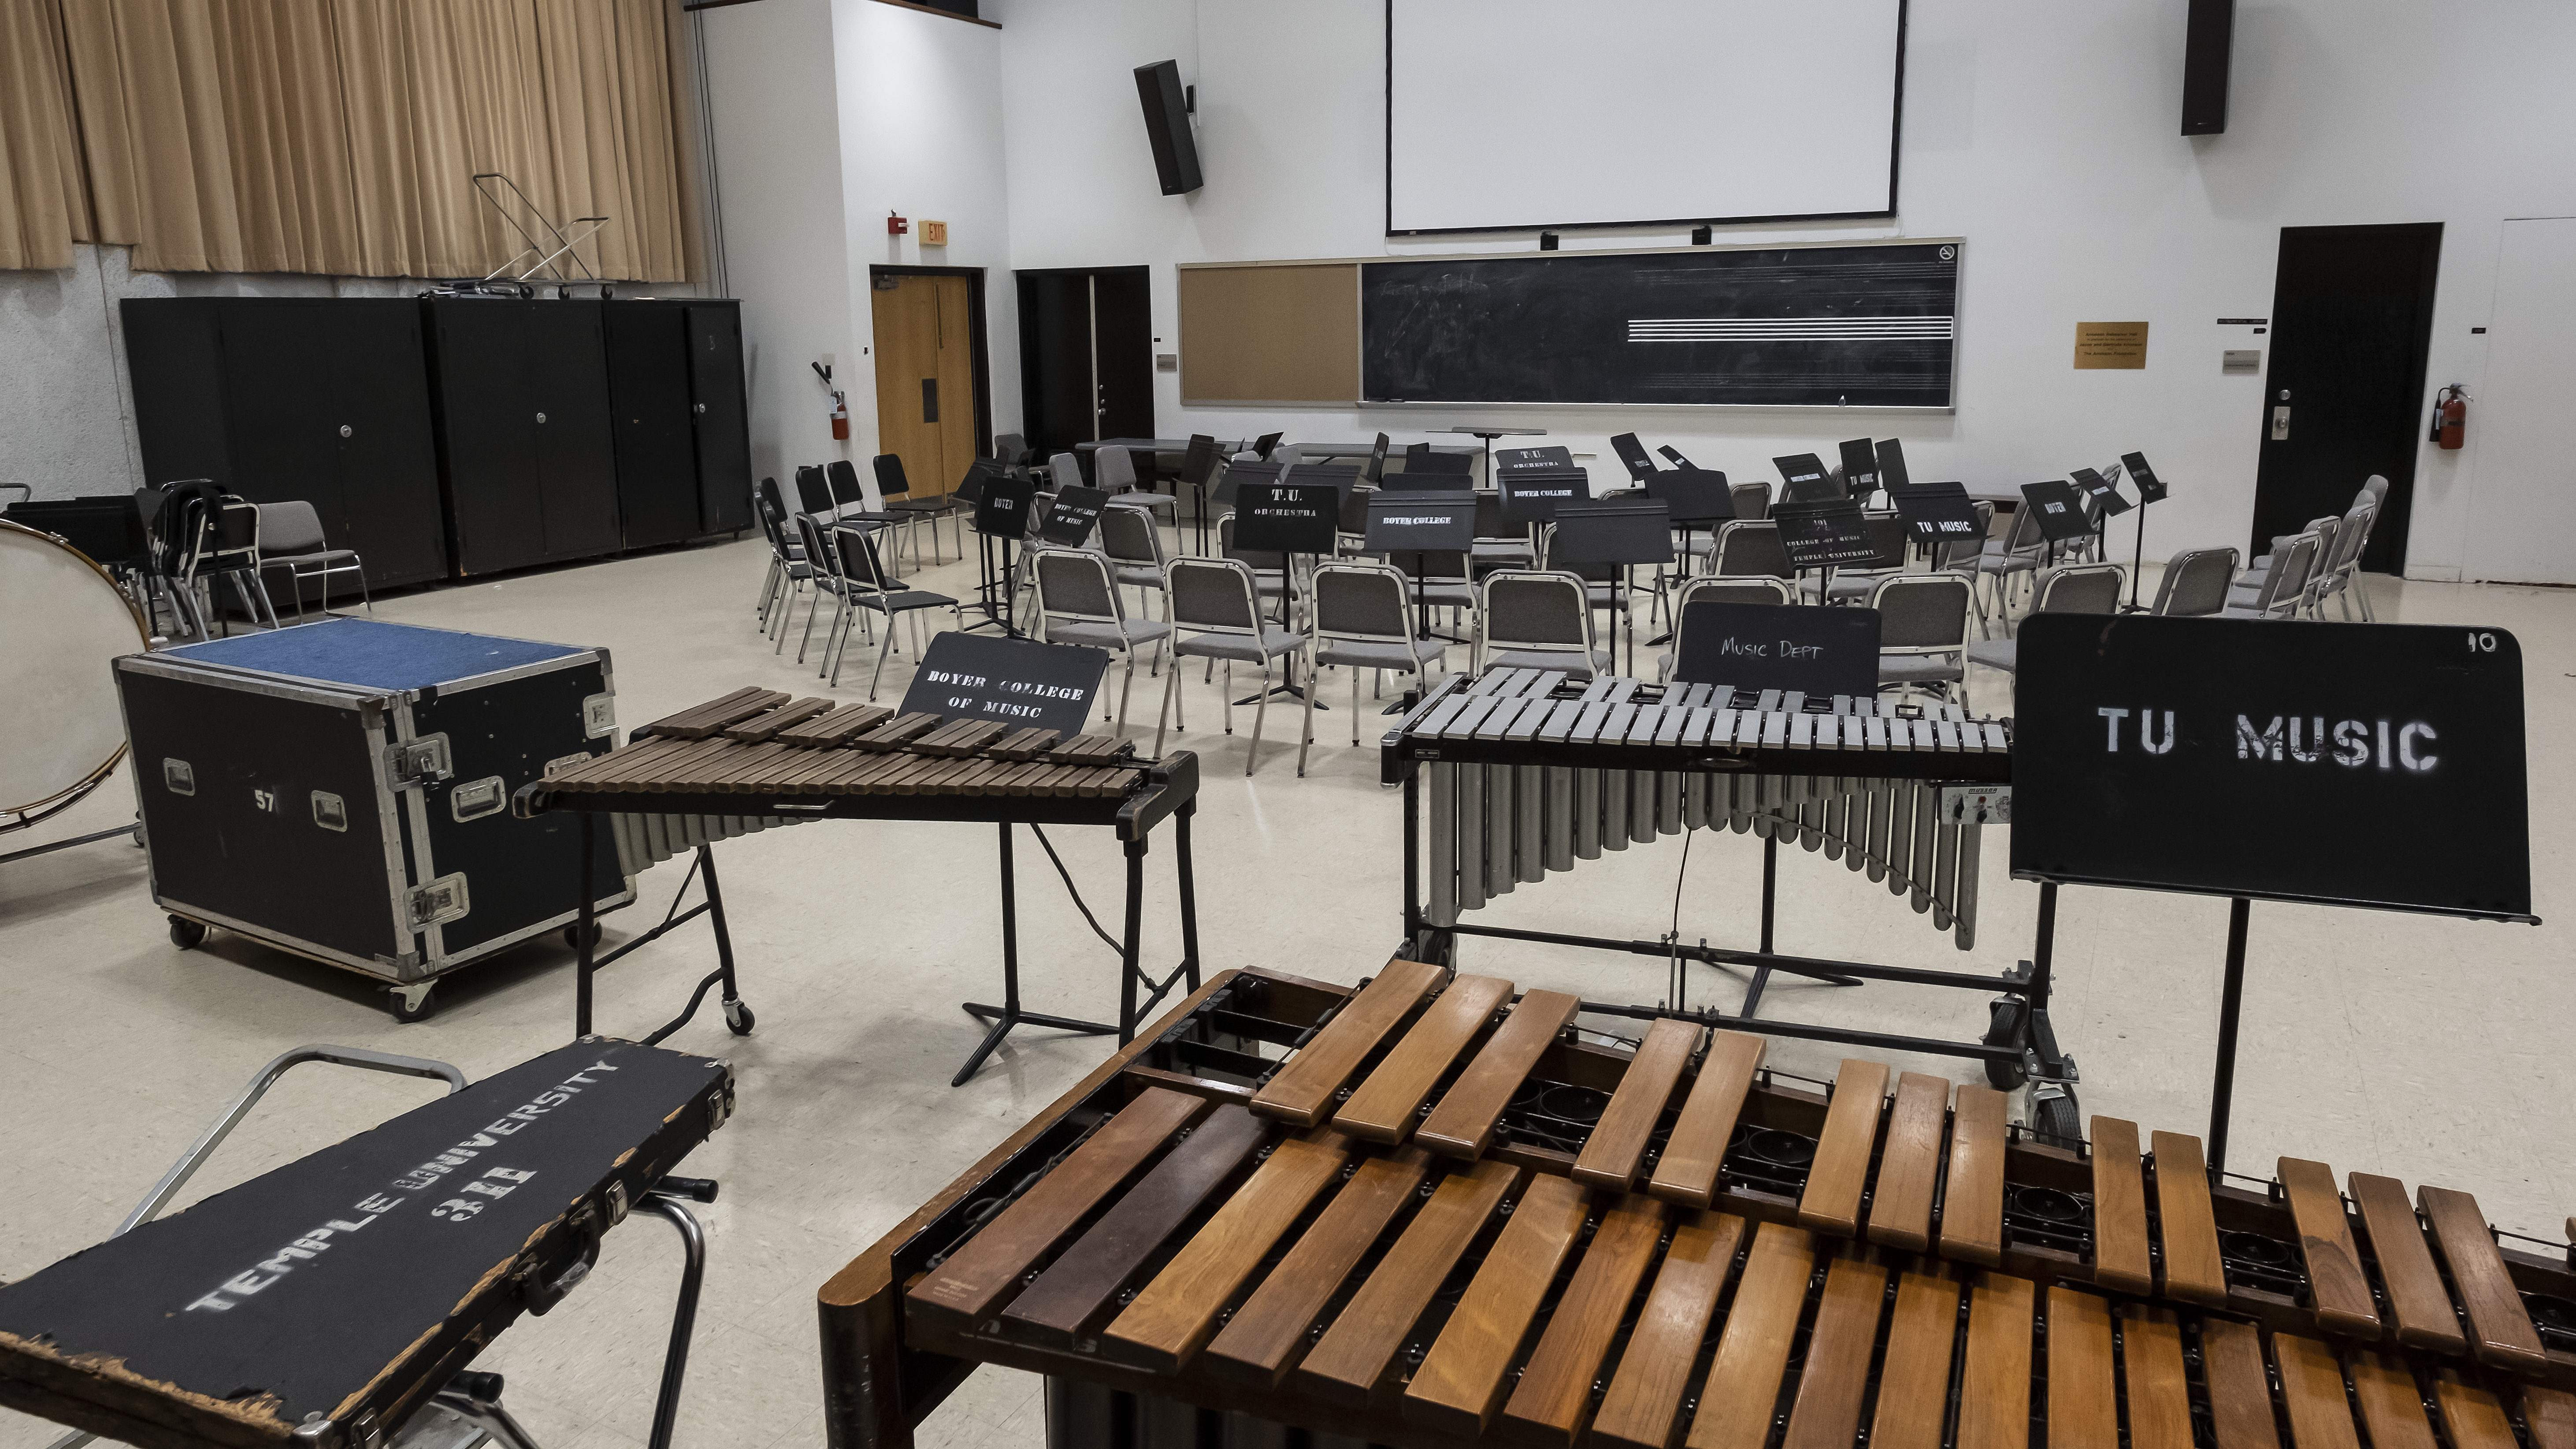 Rehearsal space with two marimbas and one xylophone, three rows of chairs in front of them